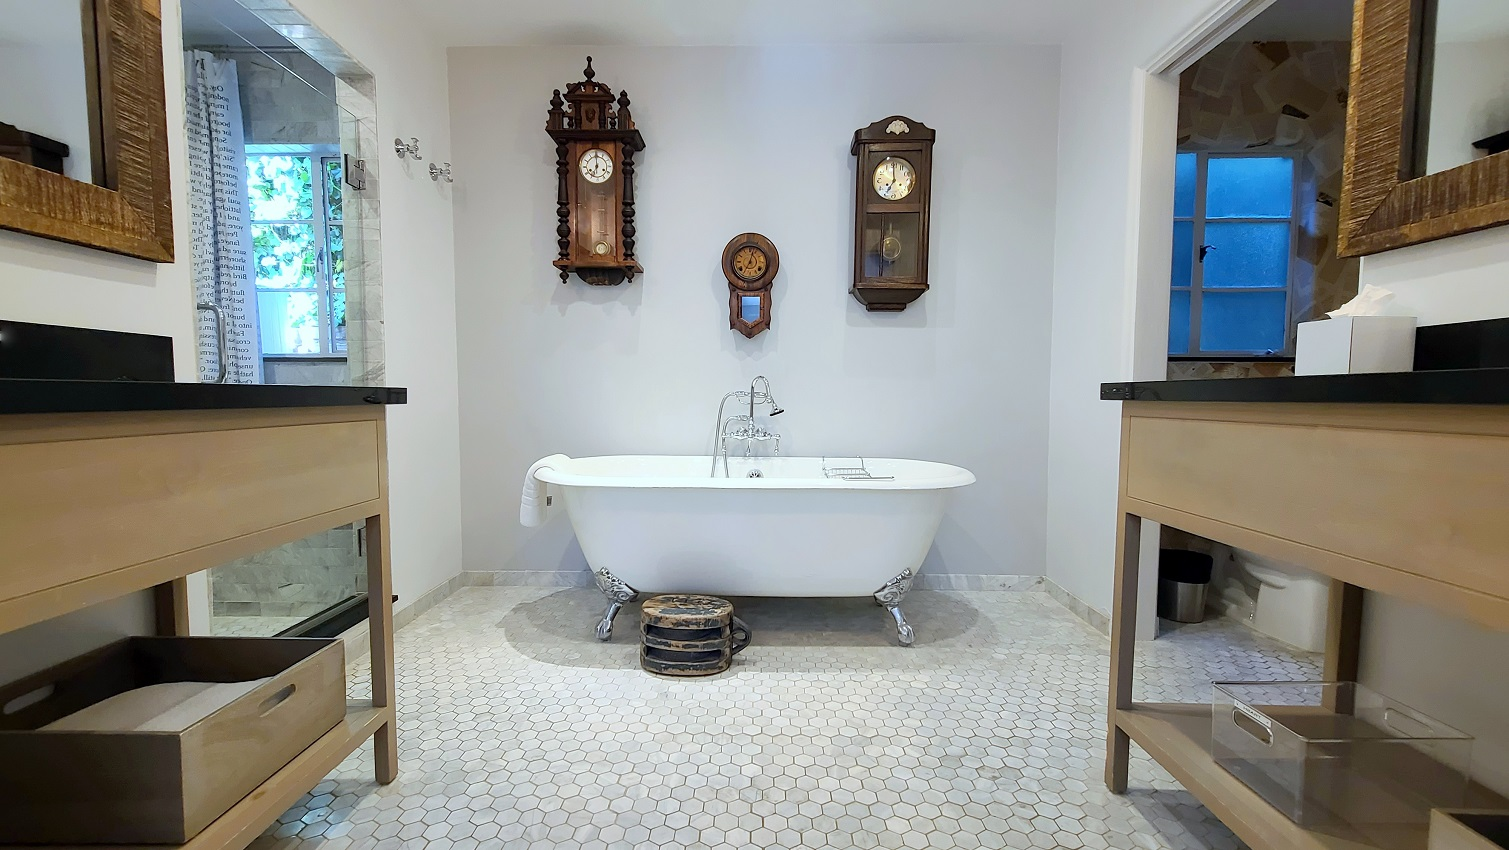 free standing tub with three clocks over it